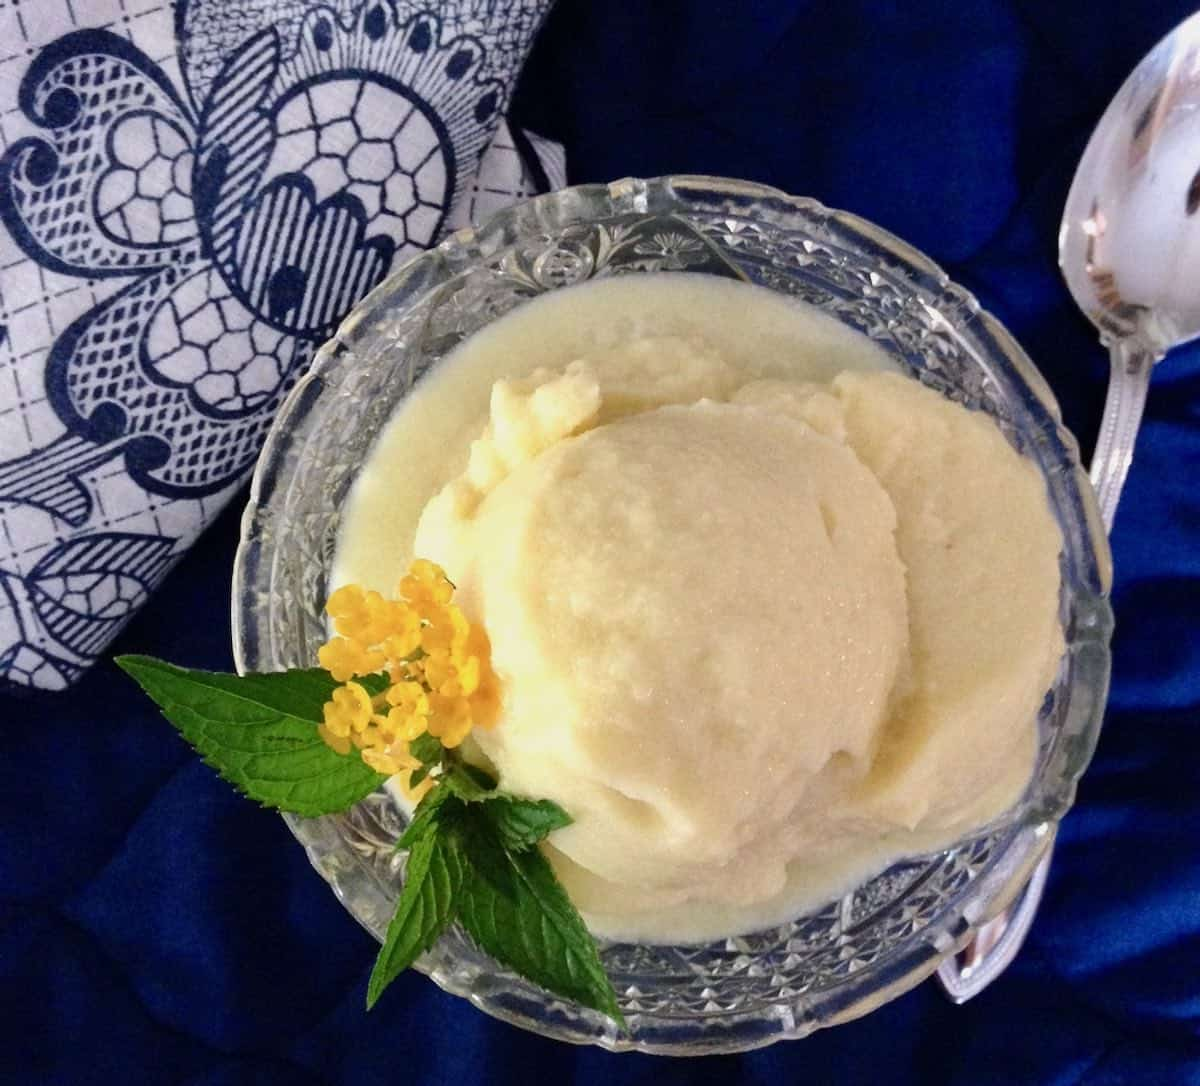 no borage-use mint and another pretty flower for garnish on Fresh Pineapple Cucumber sorbet